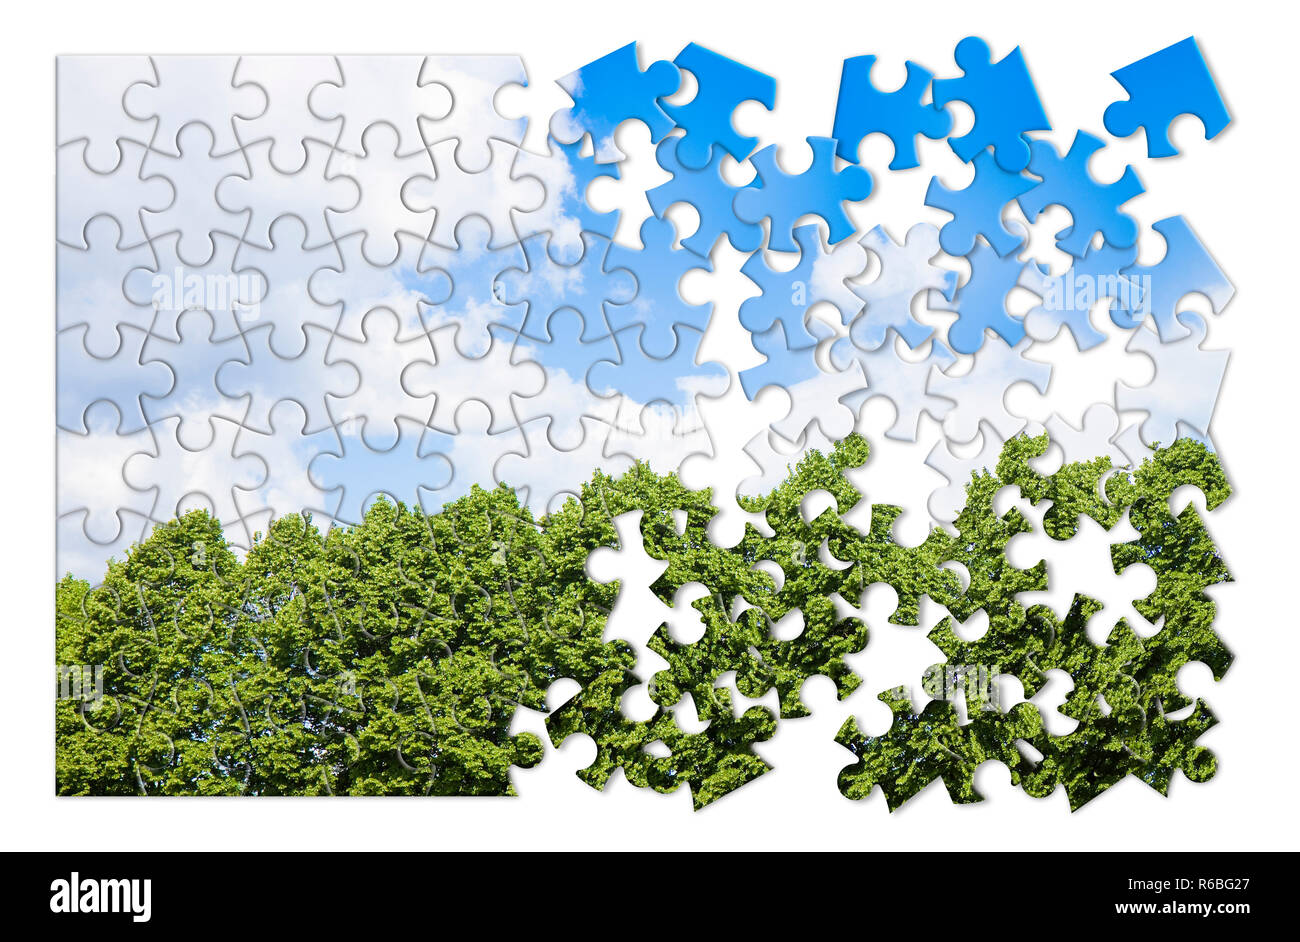 Green trees against a cloudy sky - concept image in puzzle shape - Stock Image